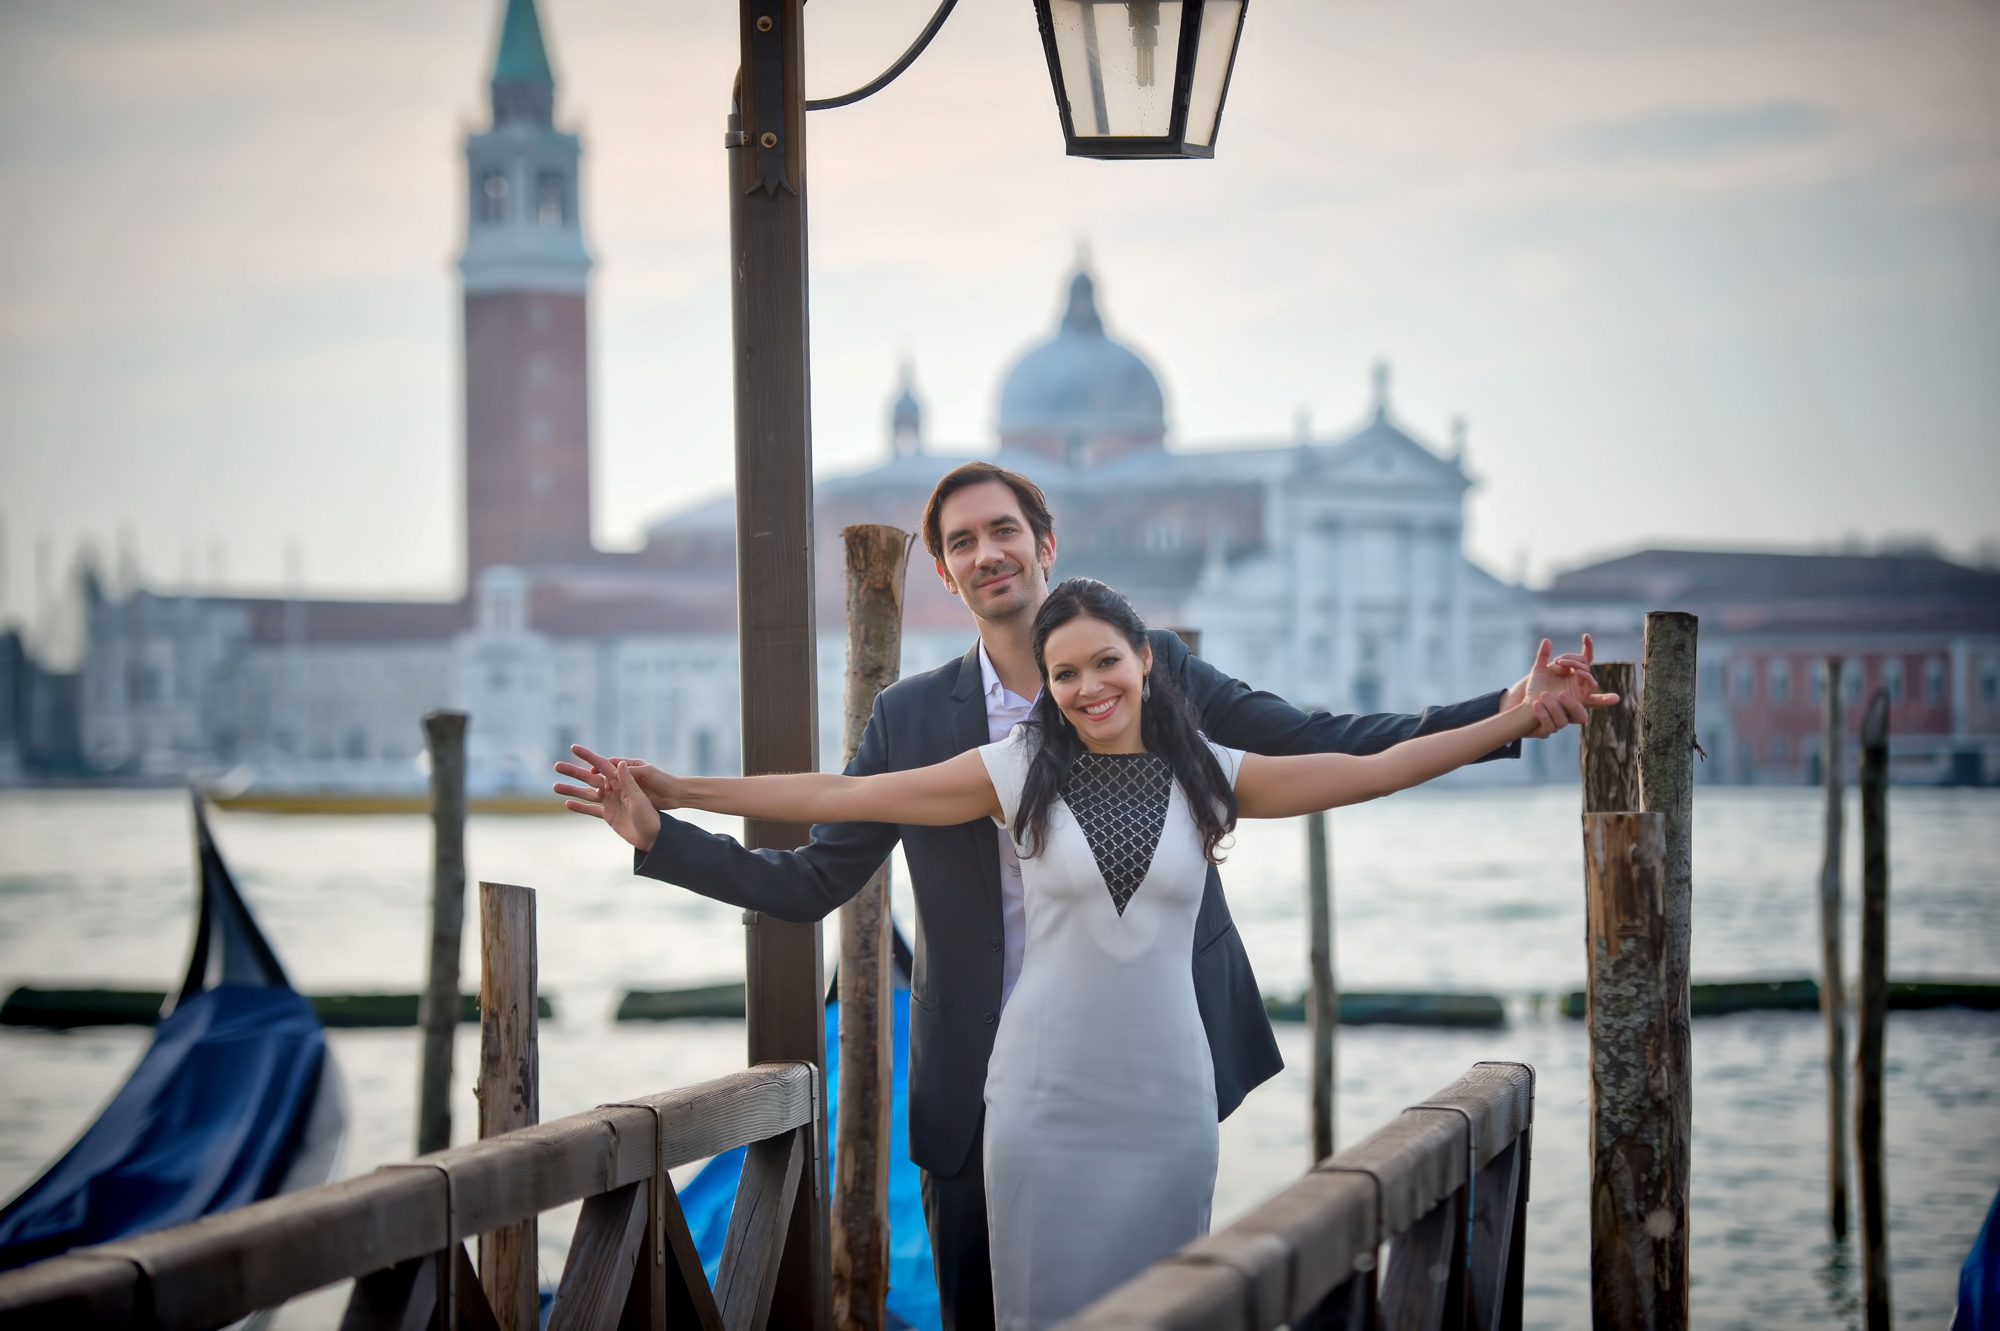 seance photo engagement a venise photographe laure jacquemin  (4)